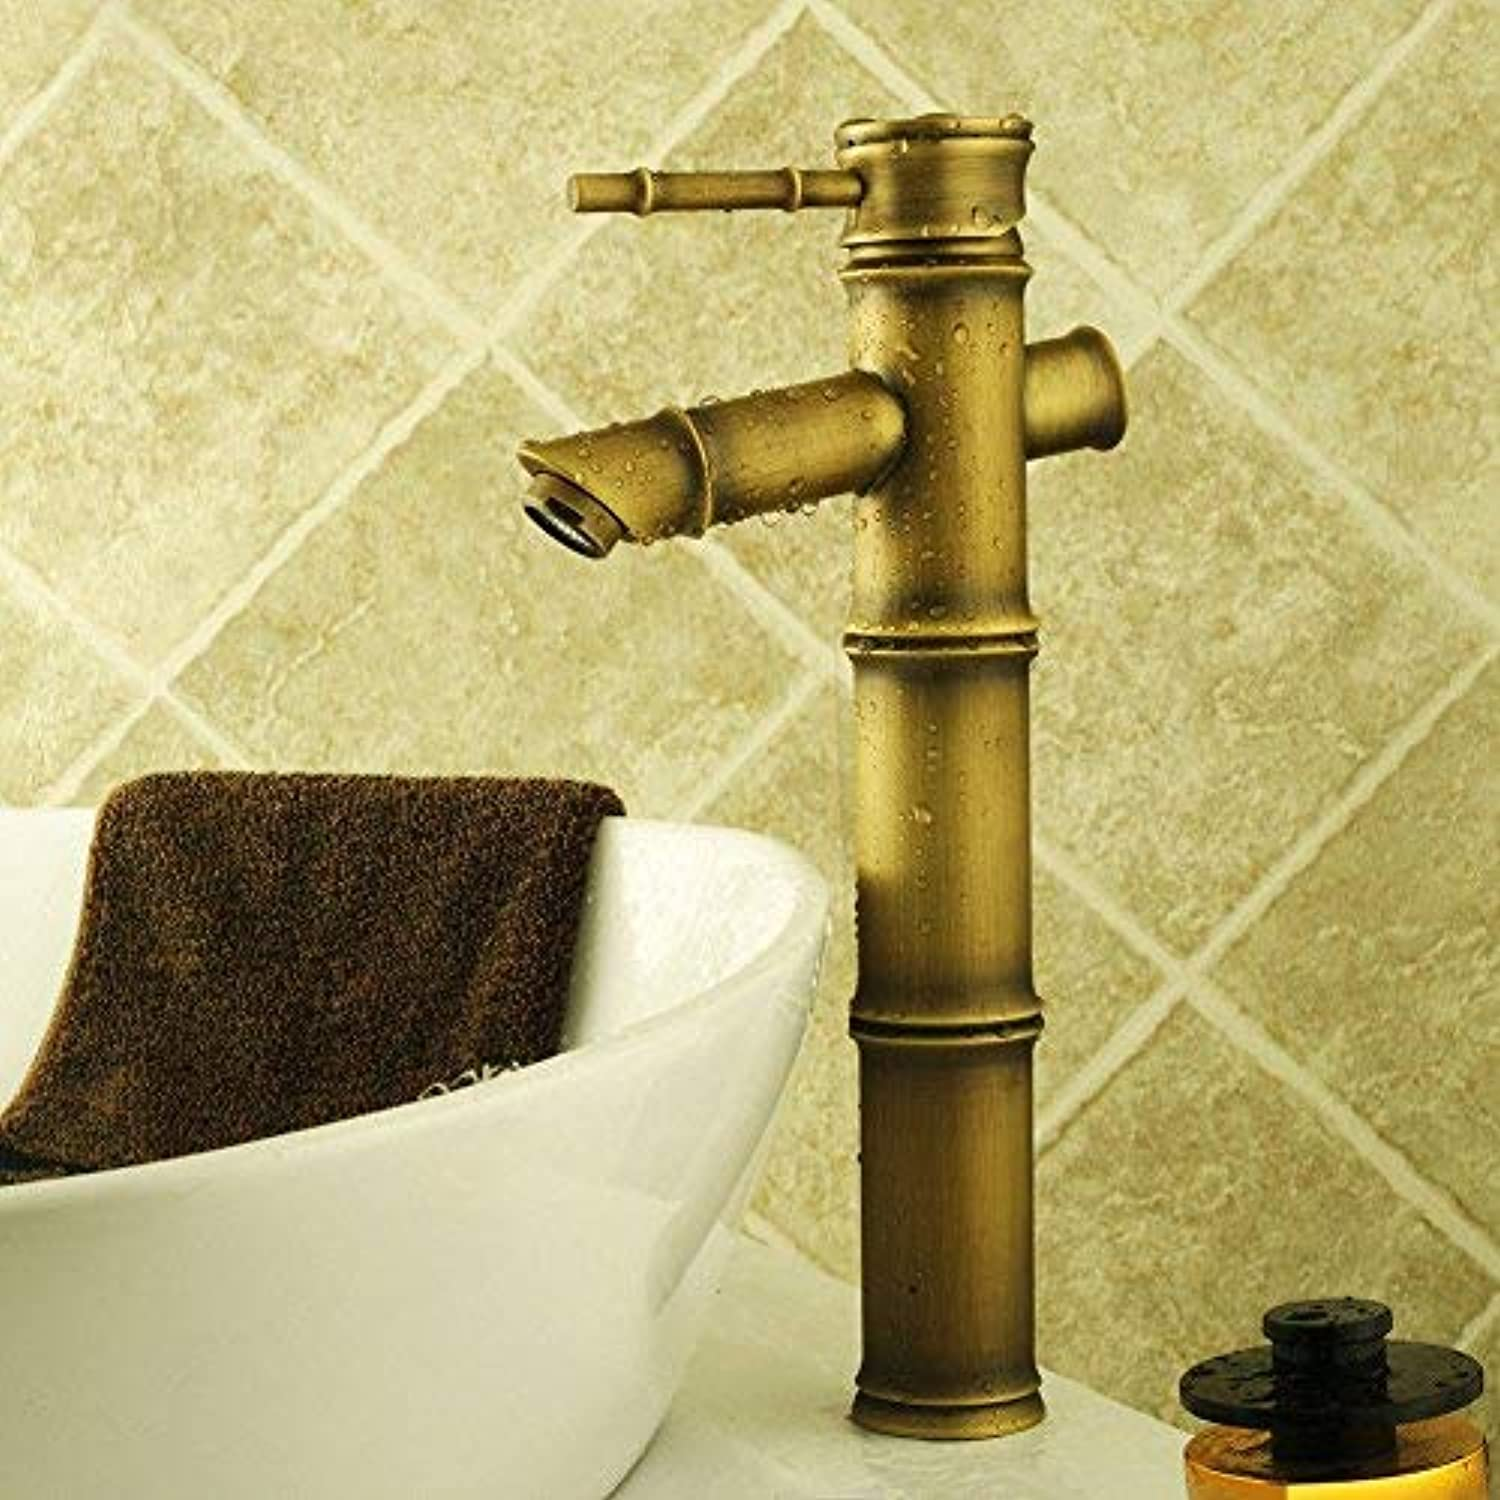 FORTR home Sink Mixer Tap Bathroom Kitchen Basin Tap Leakproof Save Water Mixing Hot And Cold